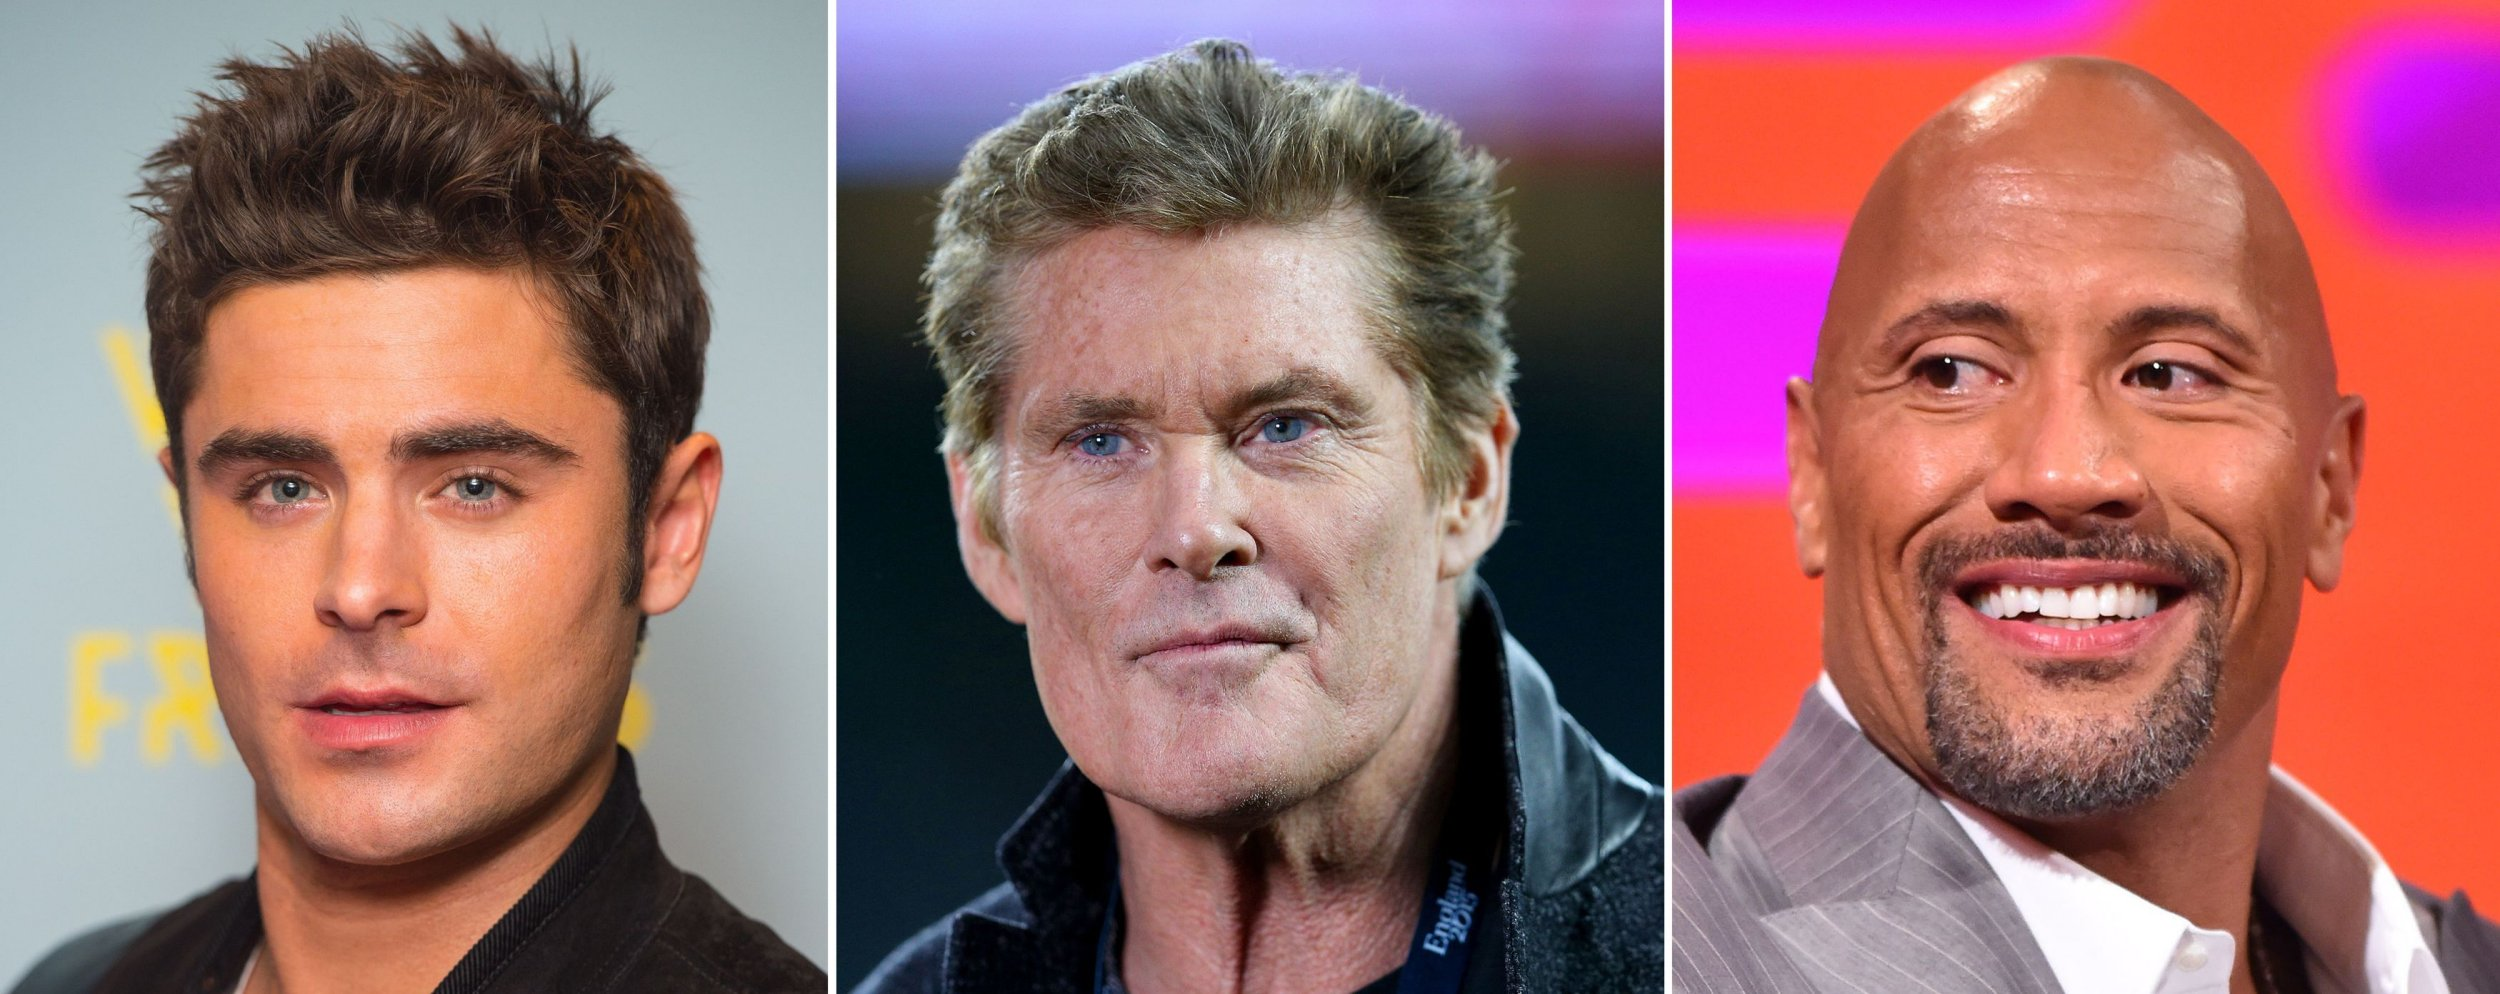 David Hasselhoff teases 'unexpected' details about Baywatch movie reboot